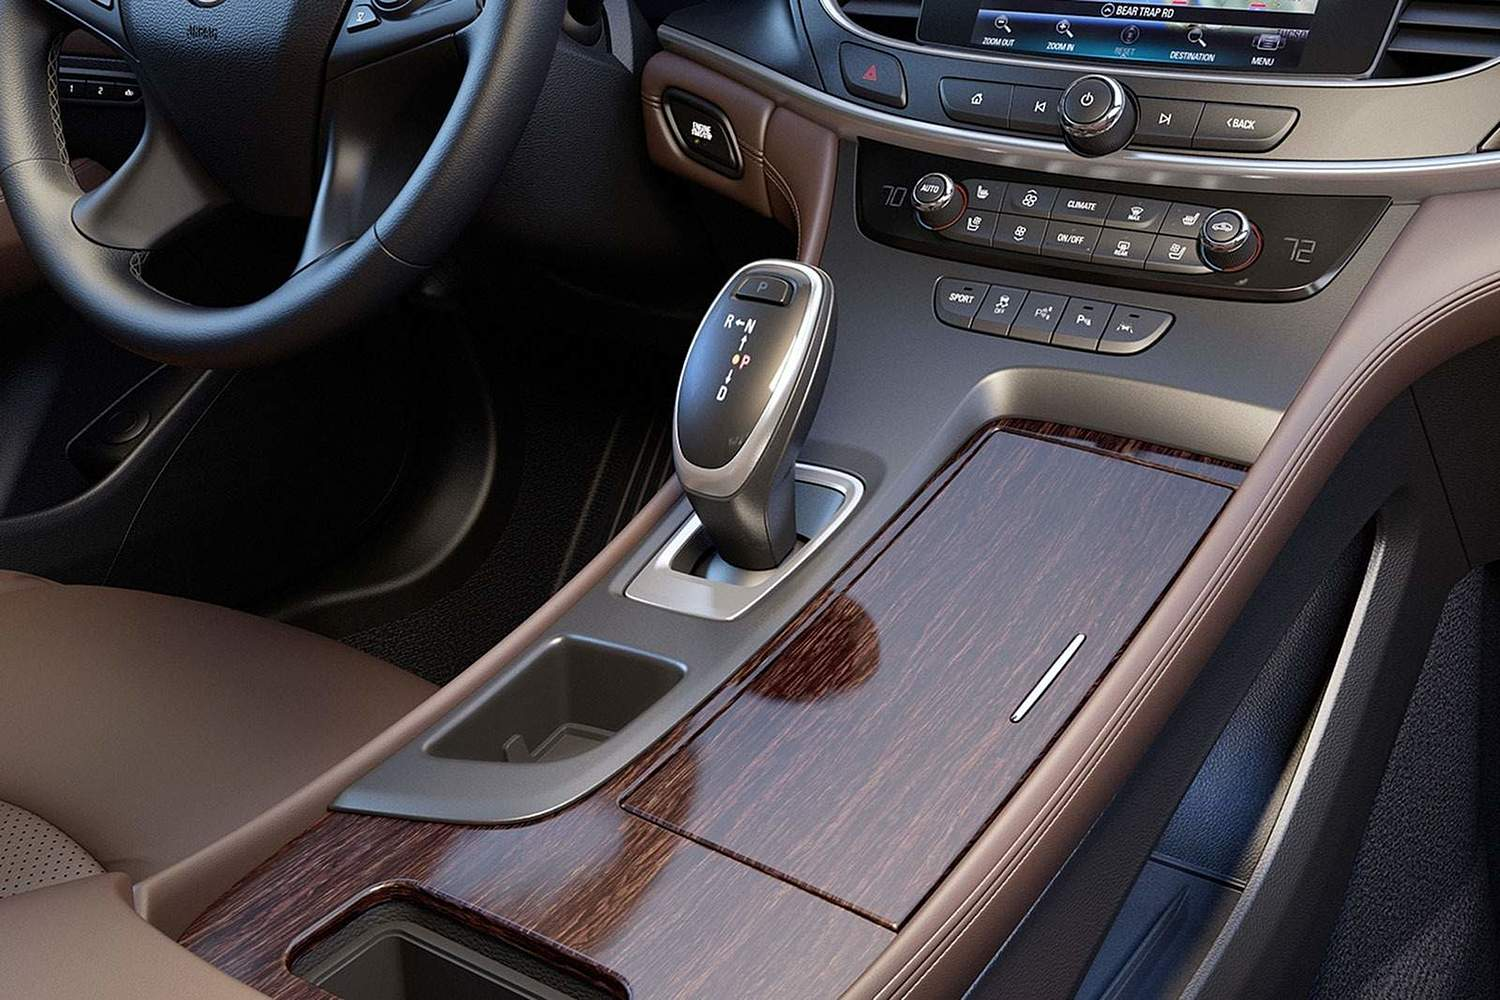 Buick LaCrosse Premium Sedan Shifter (2017 model year shown)